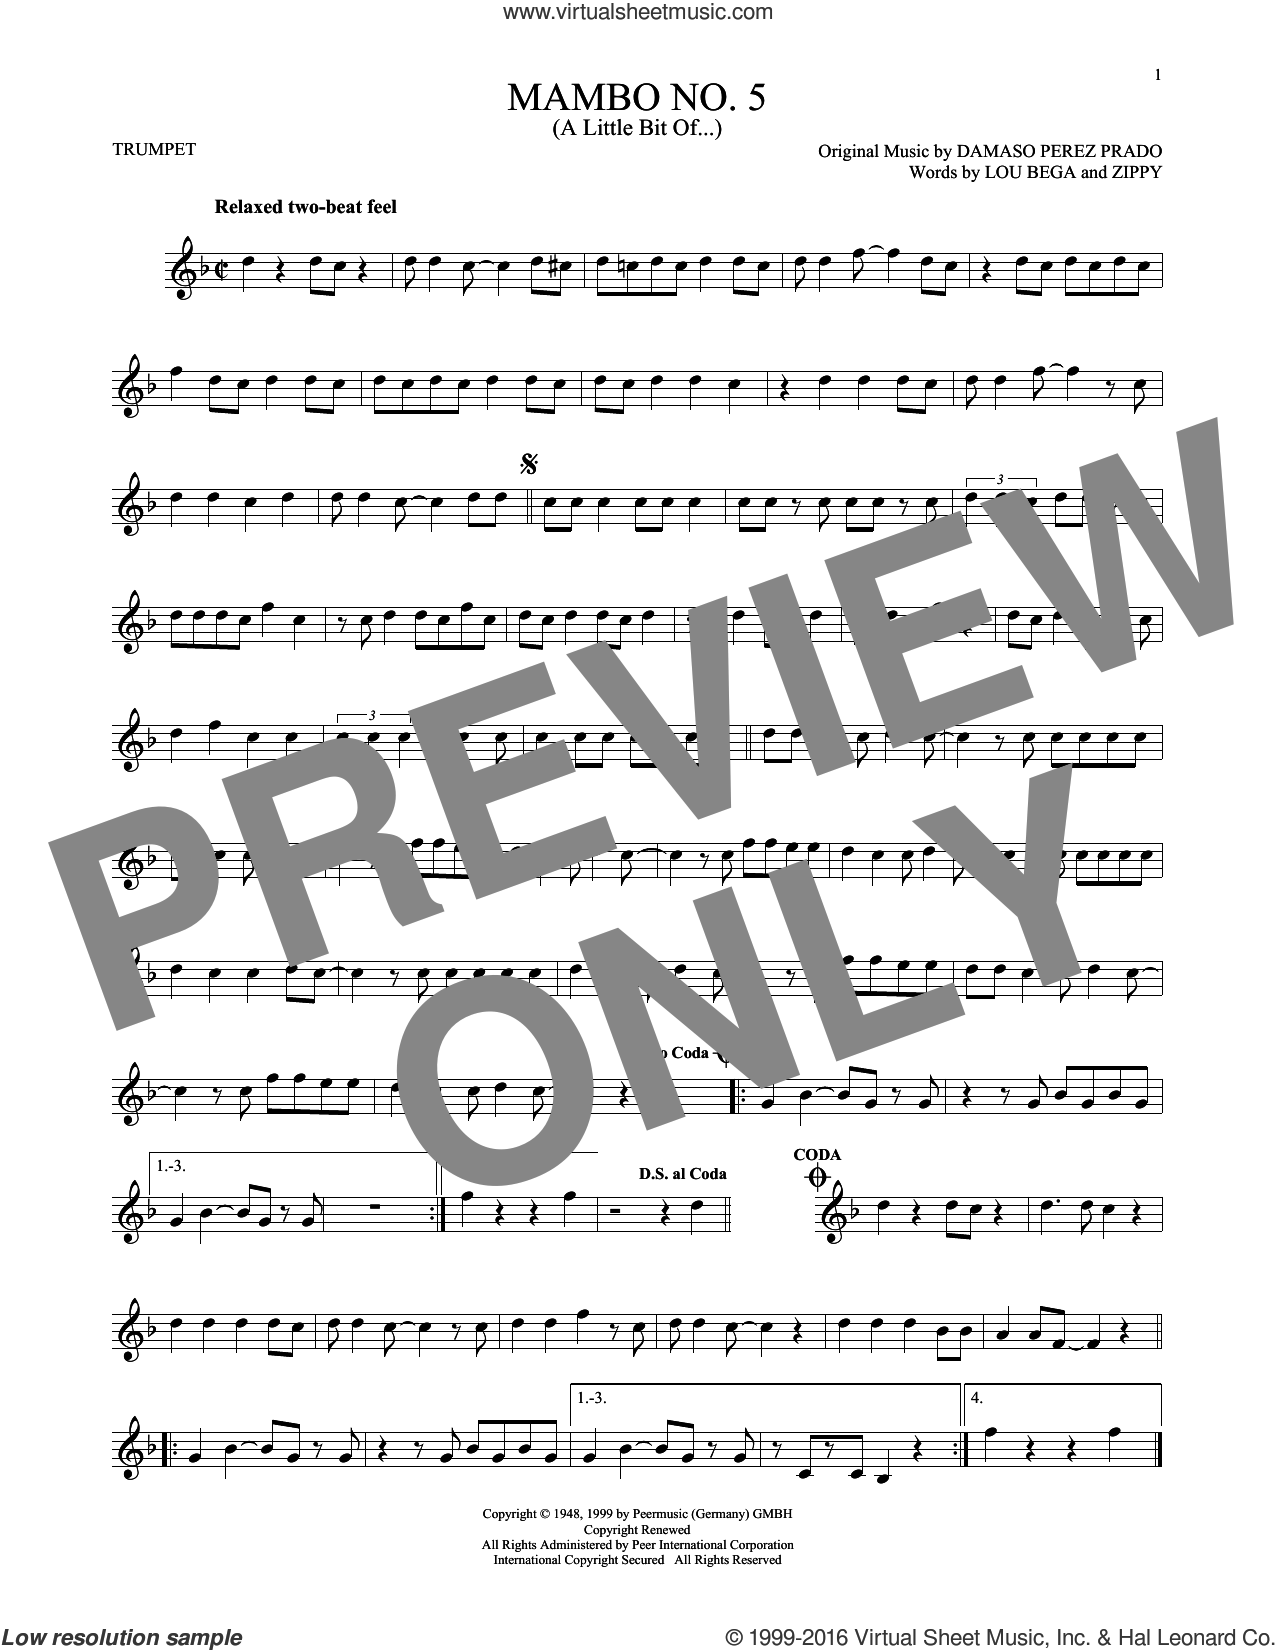 Mambo No. 5 (A Little Bit Of...) sheet music for trumpet solo by Lou Bega, Damaso Perez Prado and Zippy, intermediate skill level